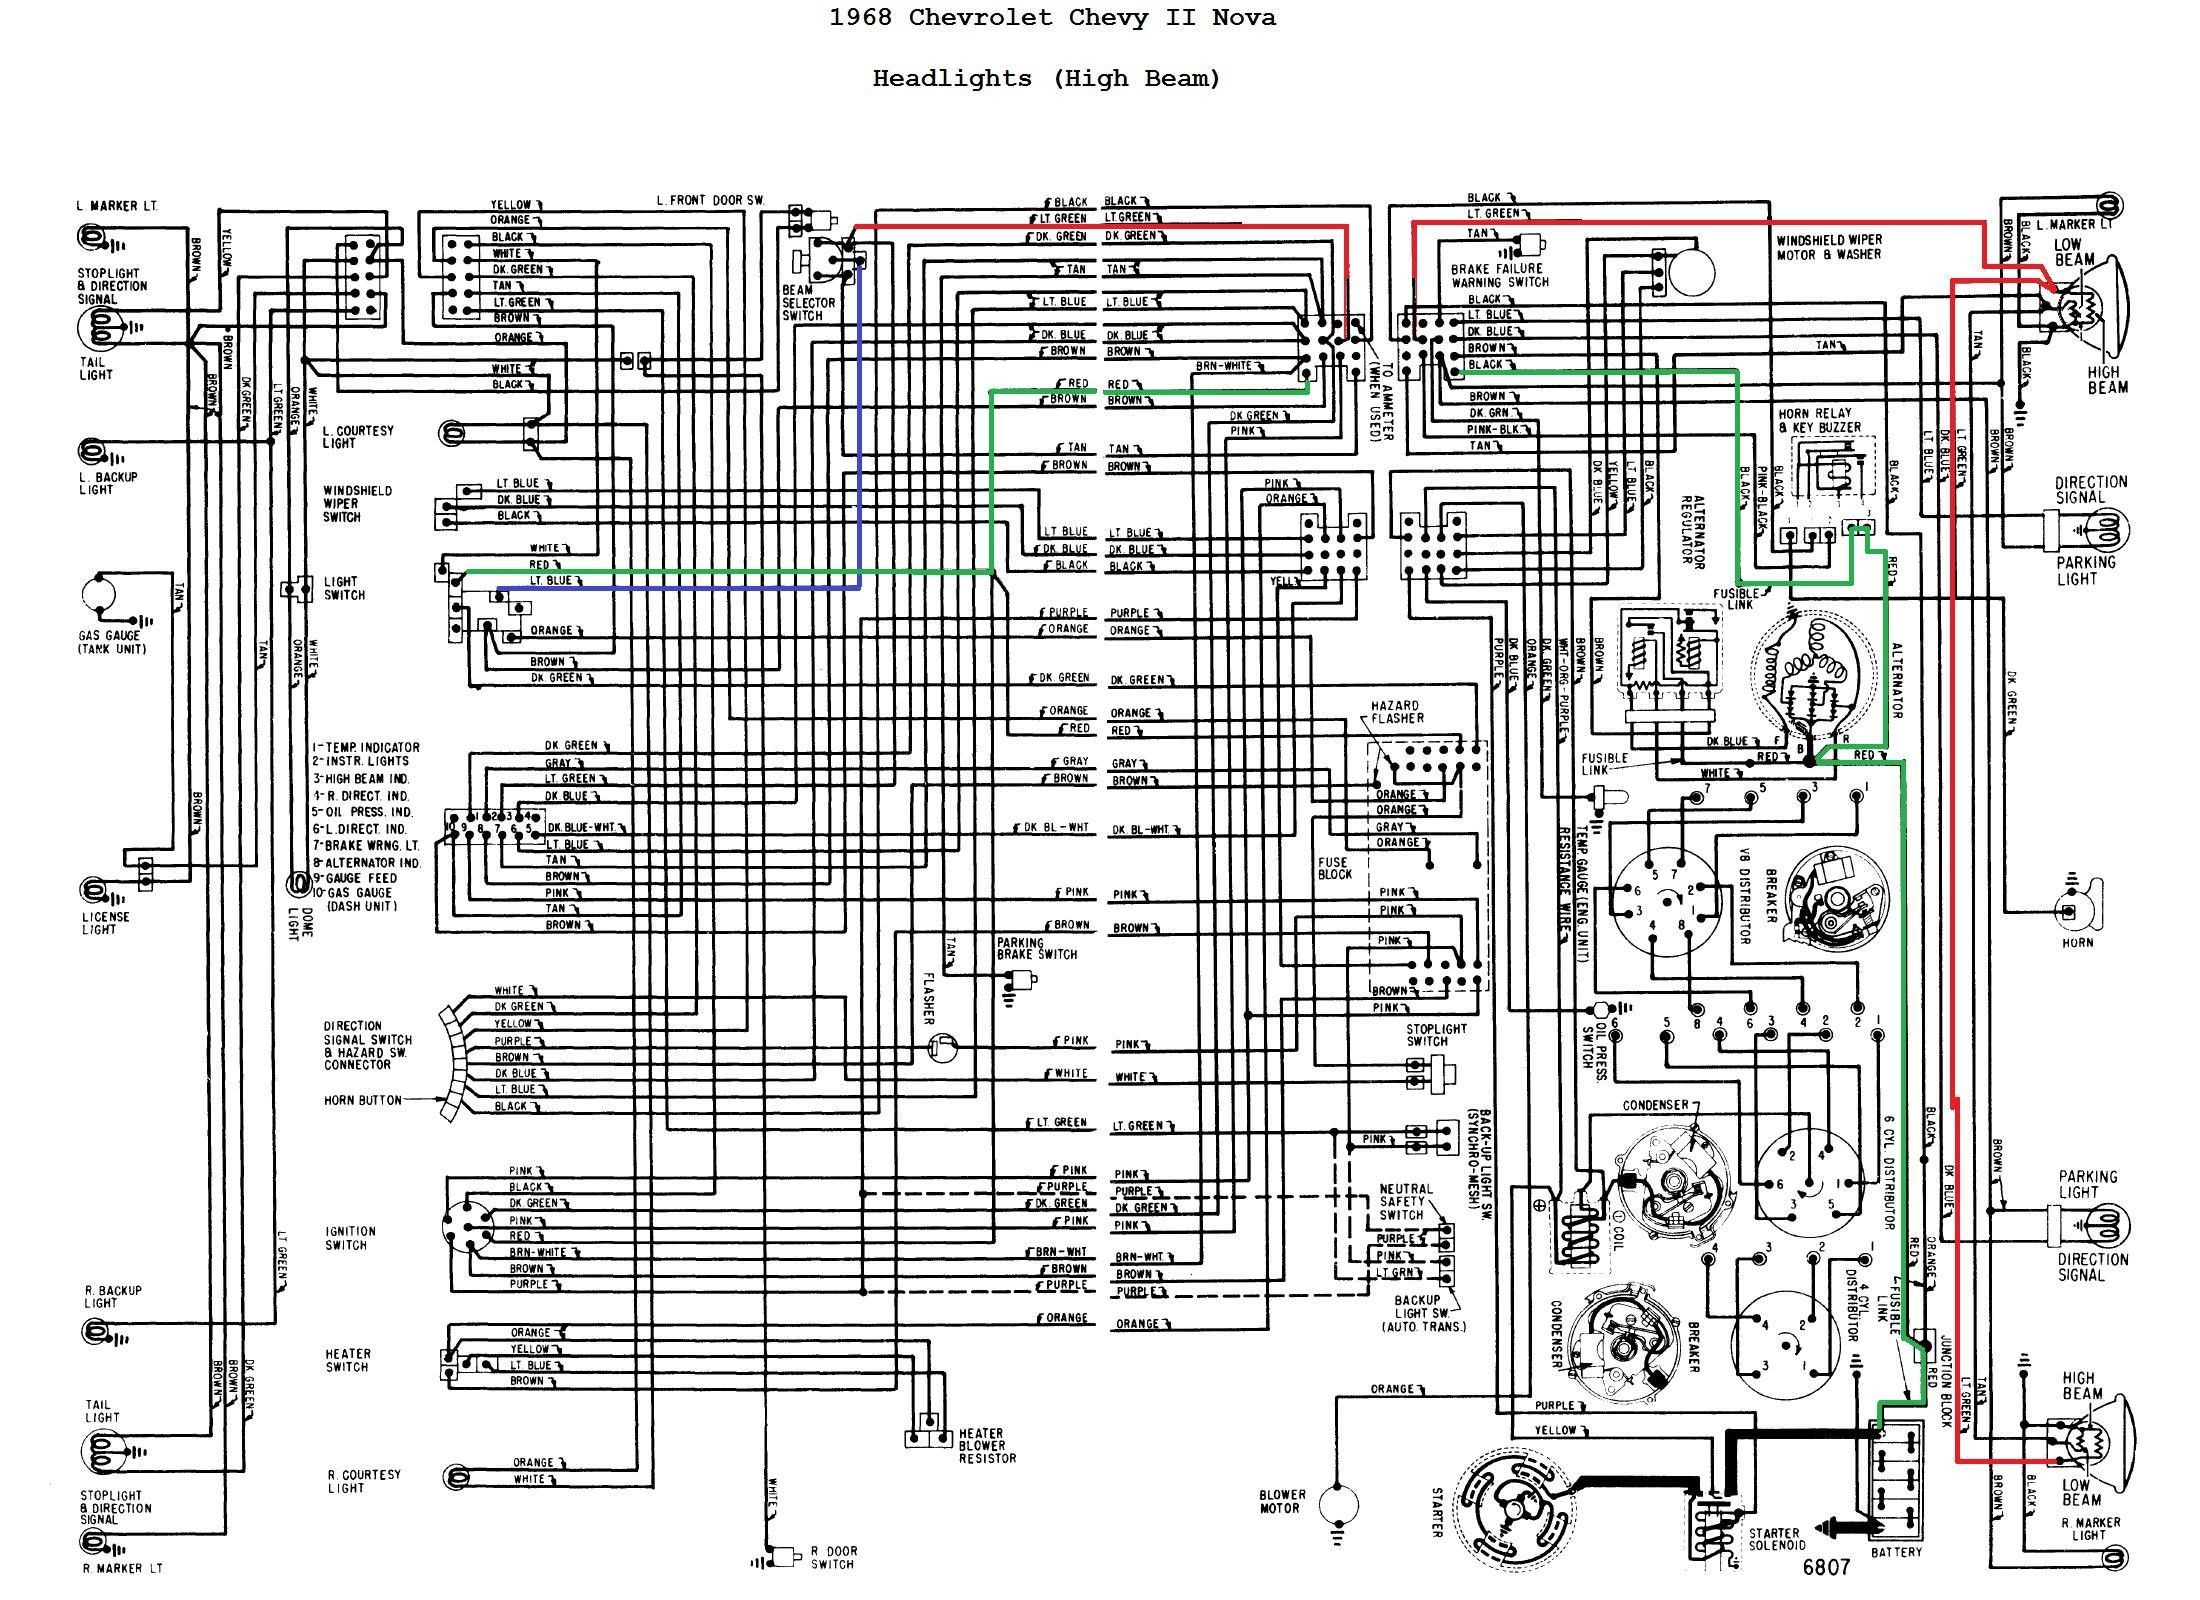 Best Of Vauxhall Alternator Wiring Diagram Diagrams Digramssample Diagramimages Wiringdiagramsample Wiringdiagram Check More At H Diagram Wire Engineering